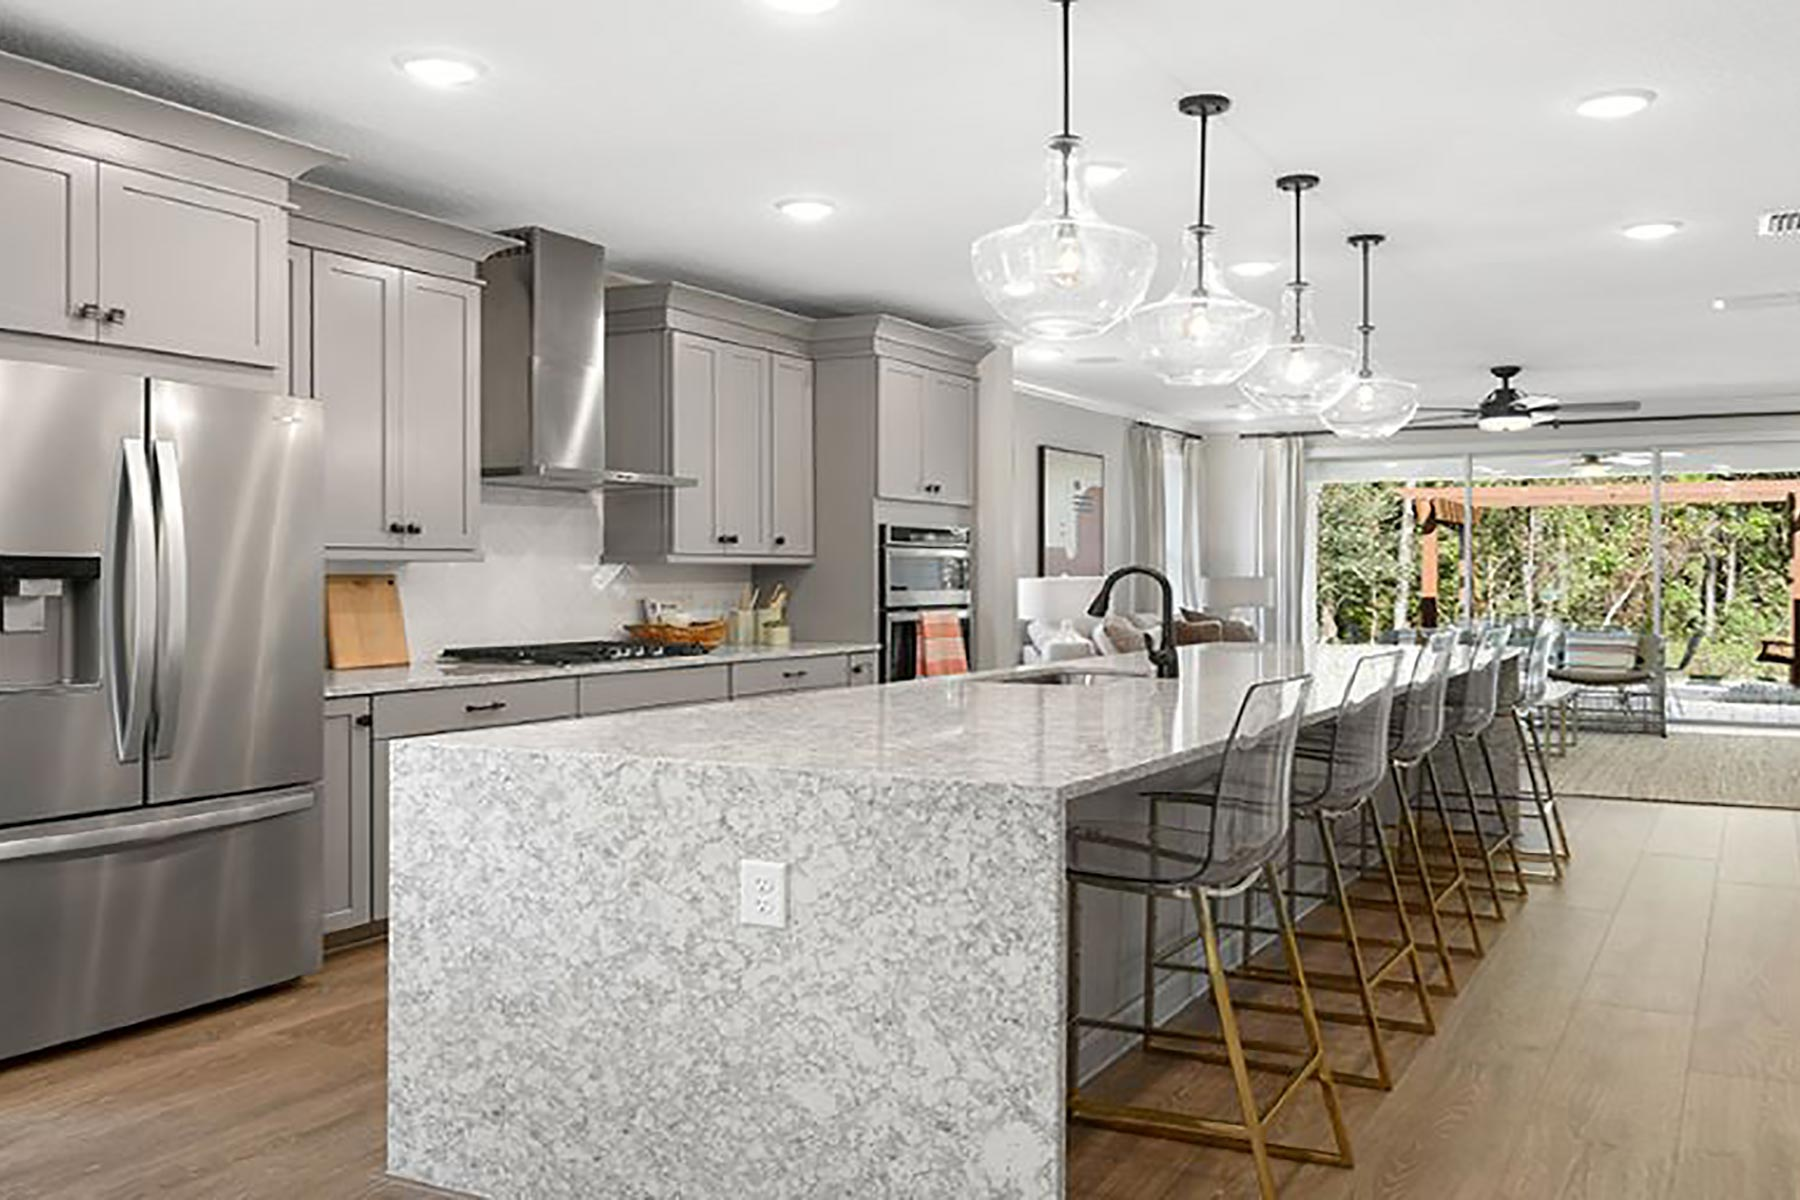 Lane Plan Kitchen at RiverTown - WaterSong in St. Johns Florida by Mattamy Homes